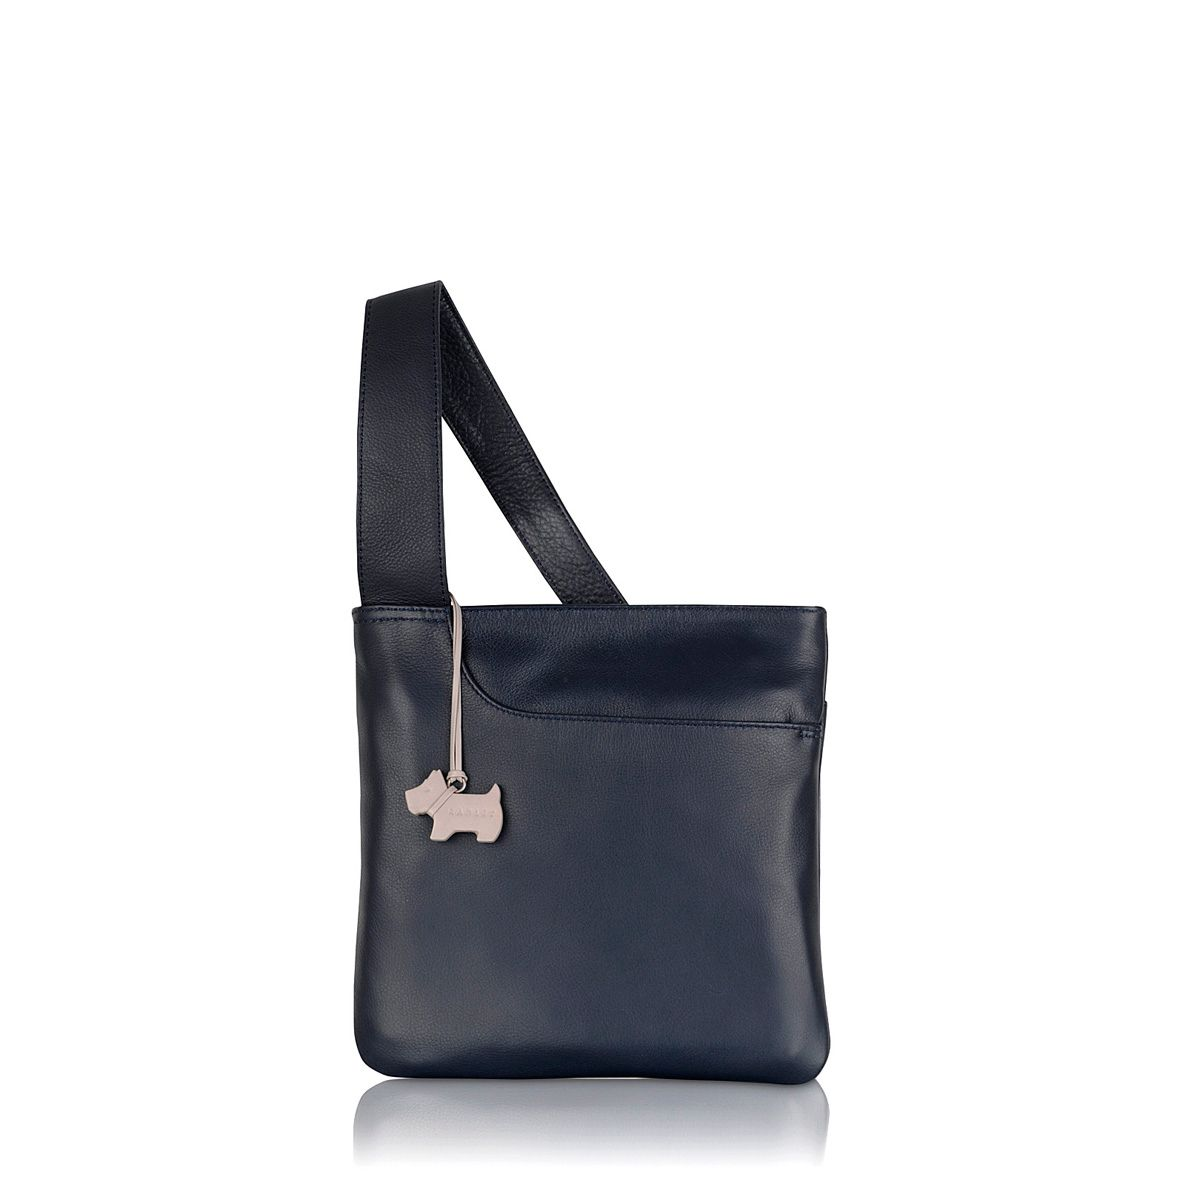 Pocket bag small ziptop xbody leather navy bag